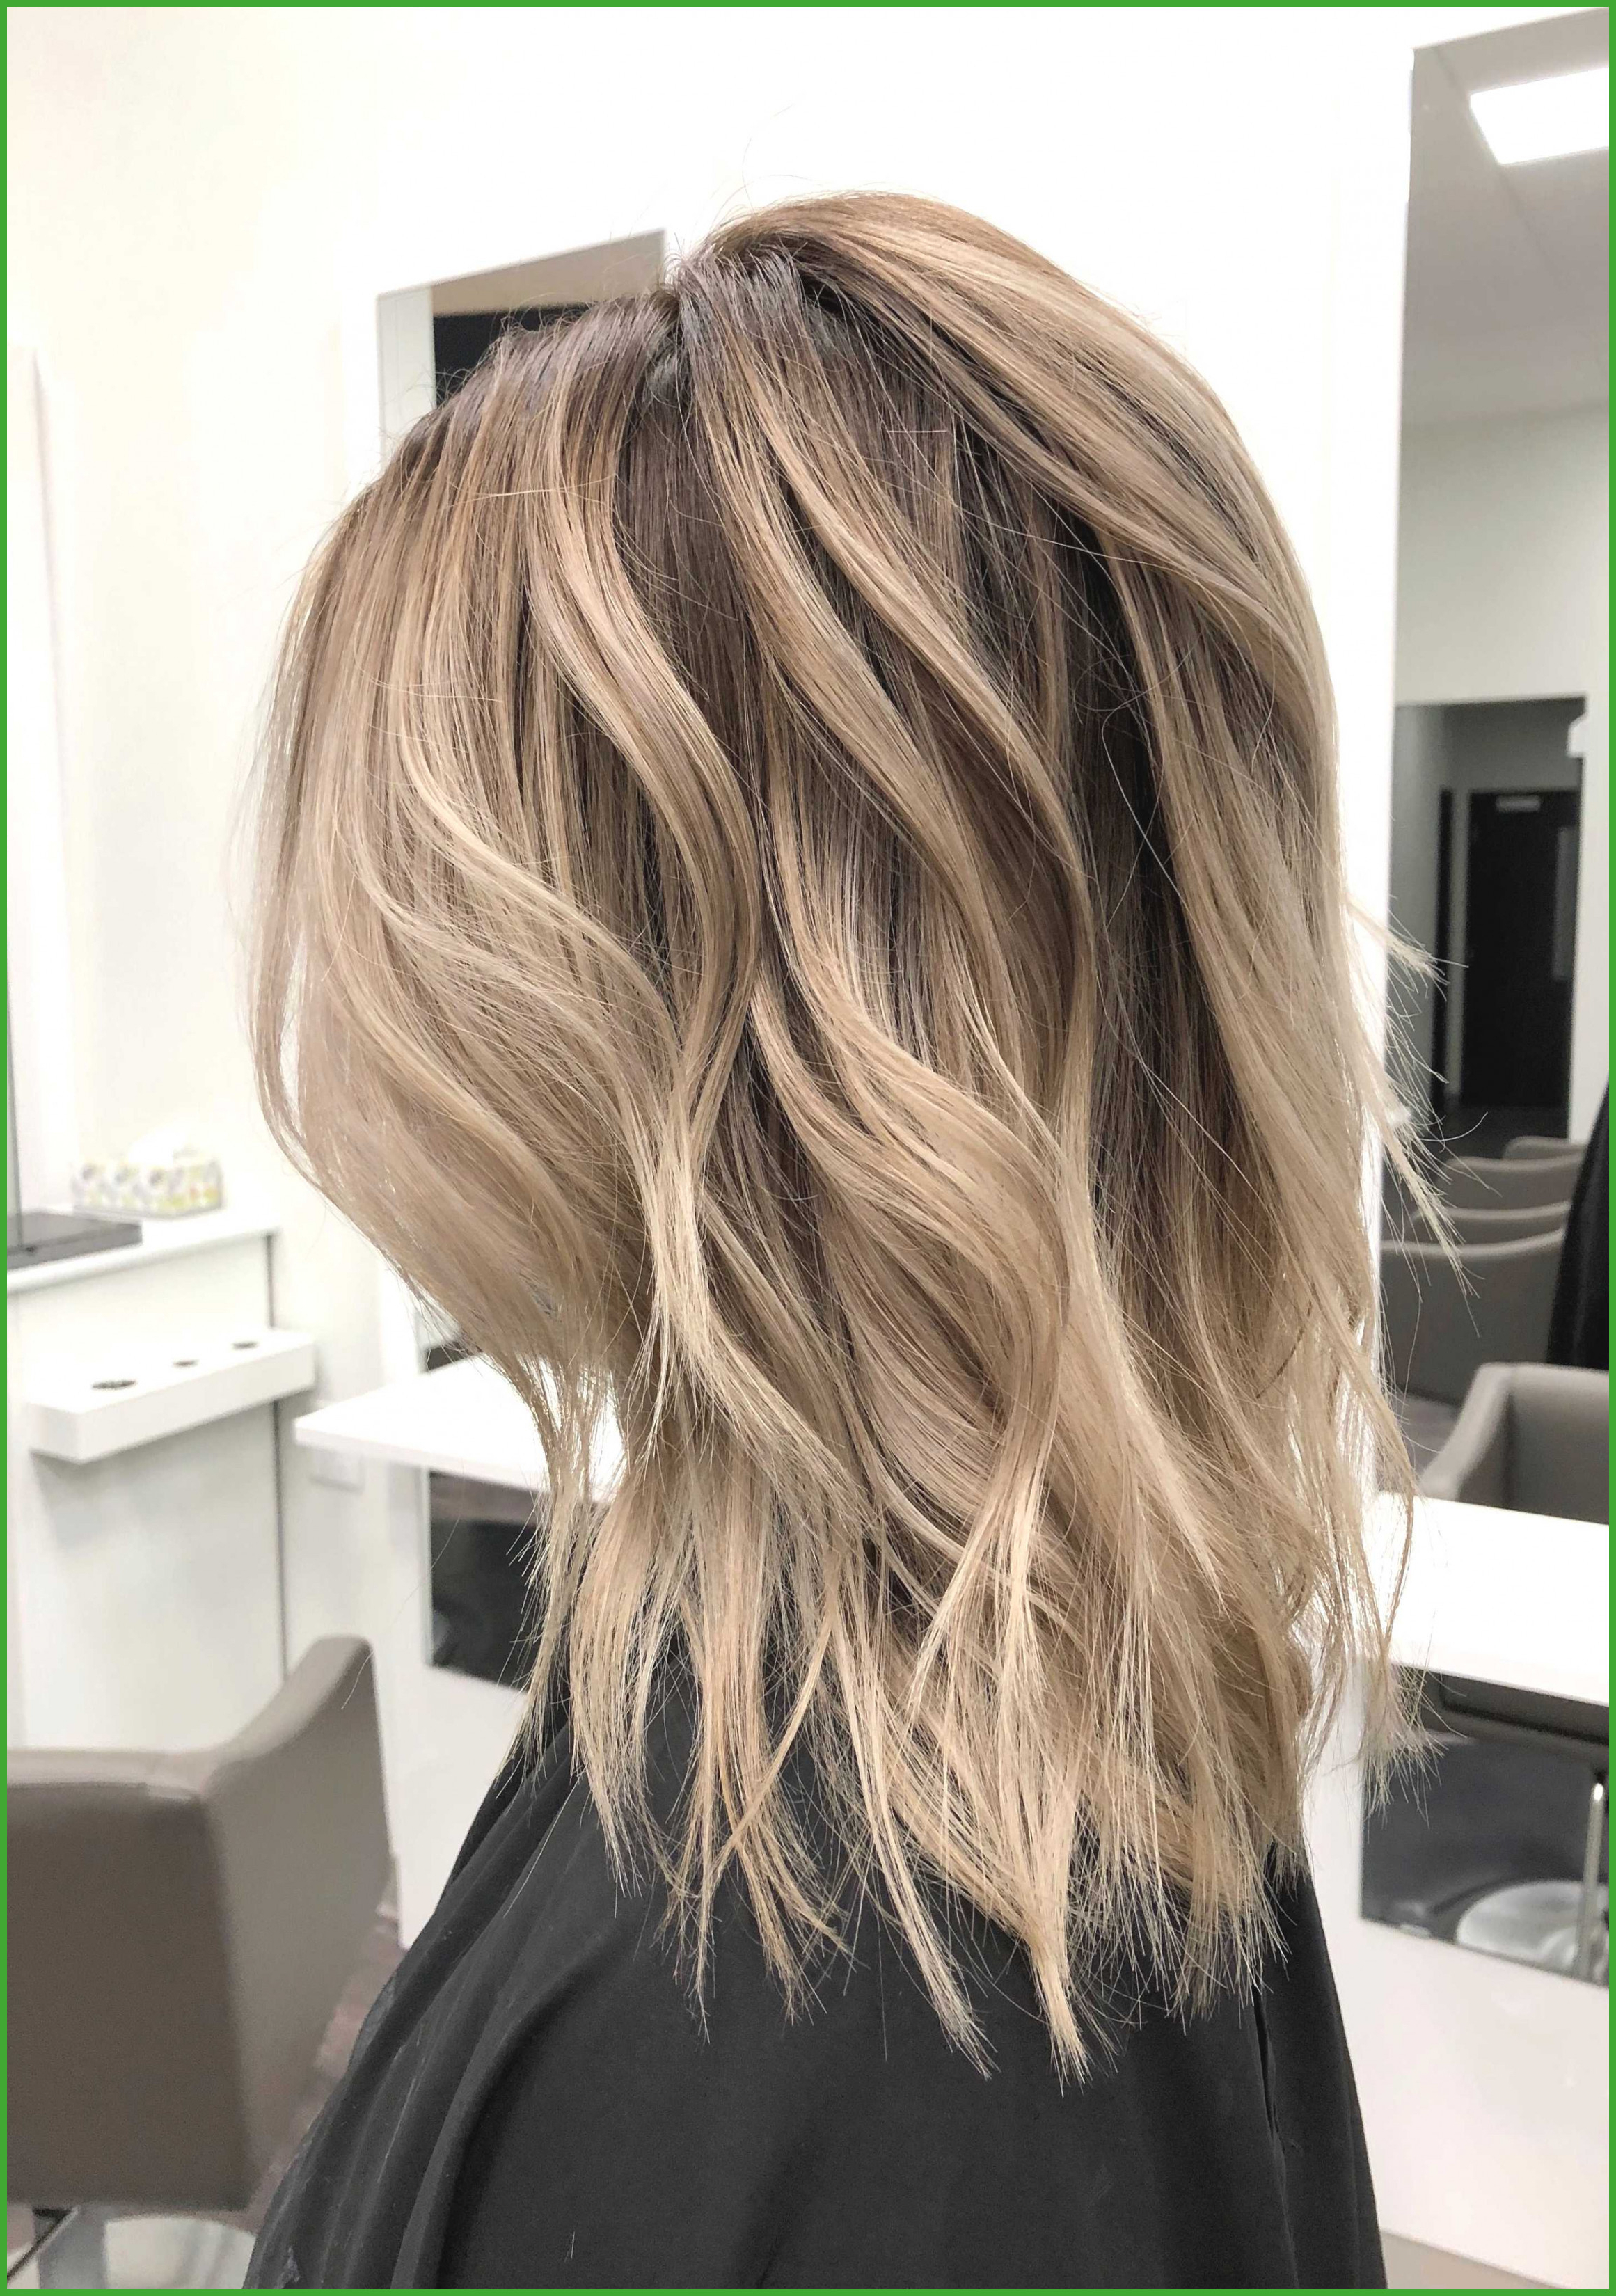 Long Length Short Layered Hairstyles Inspirational Top 20 Medium For Long And Short Layers (View 11 of 25)